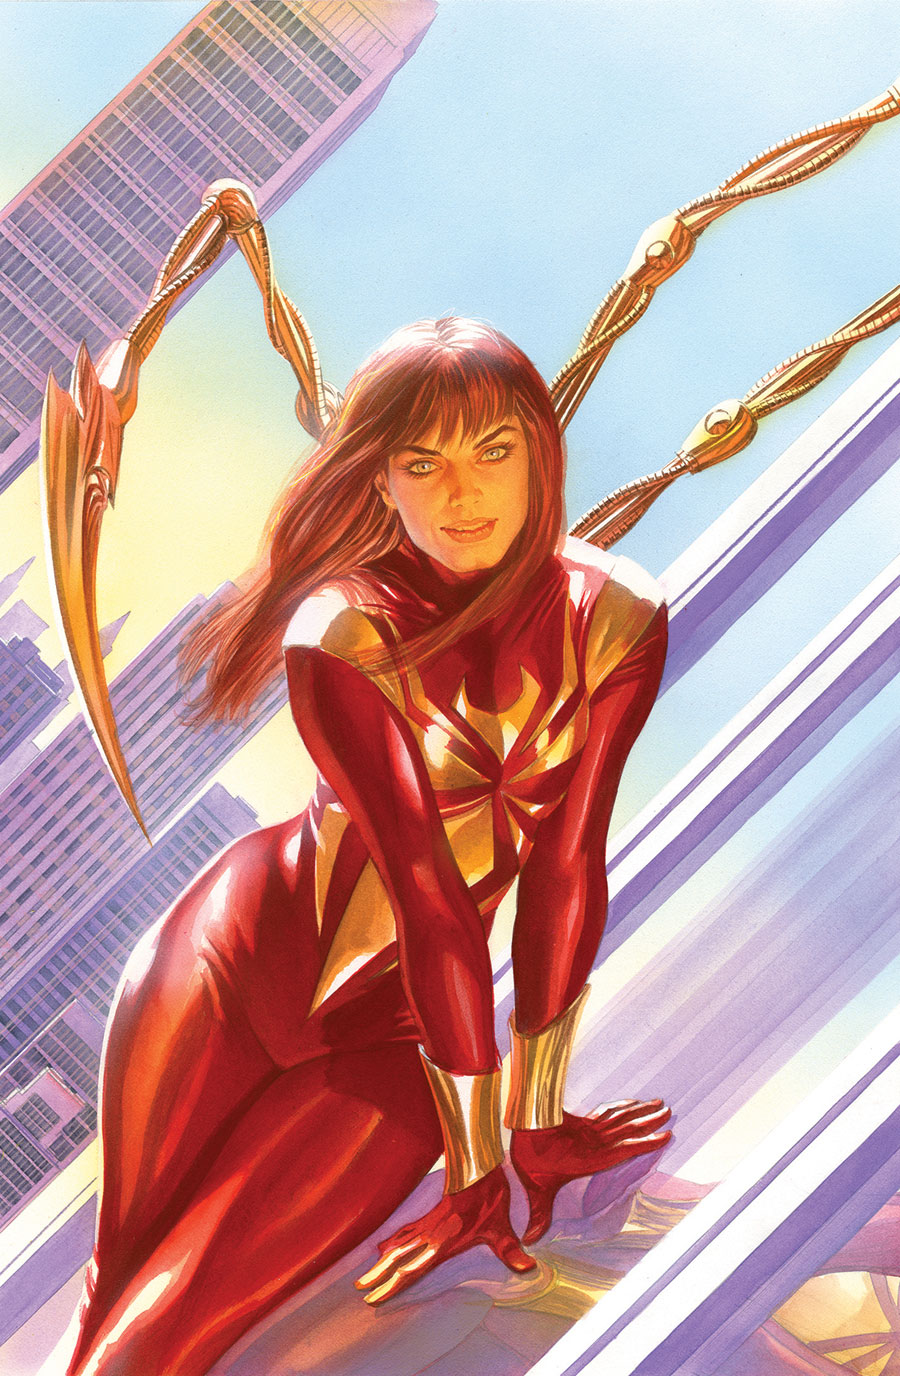 Mary Jane as Iron Spider